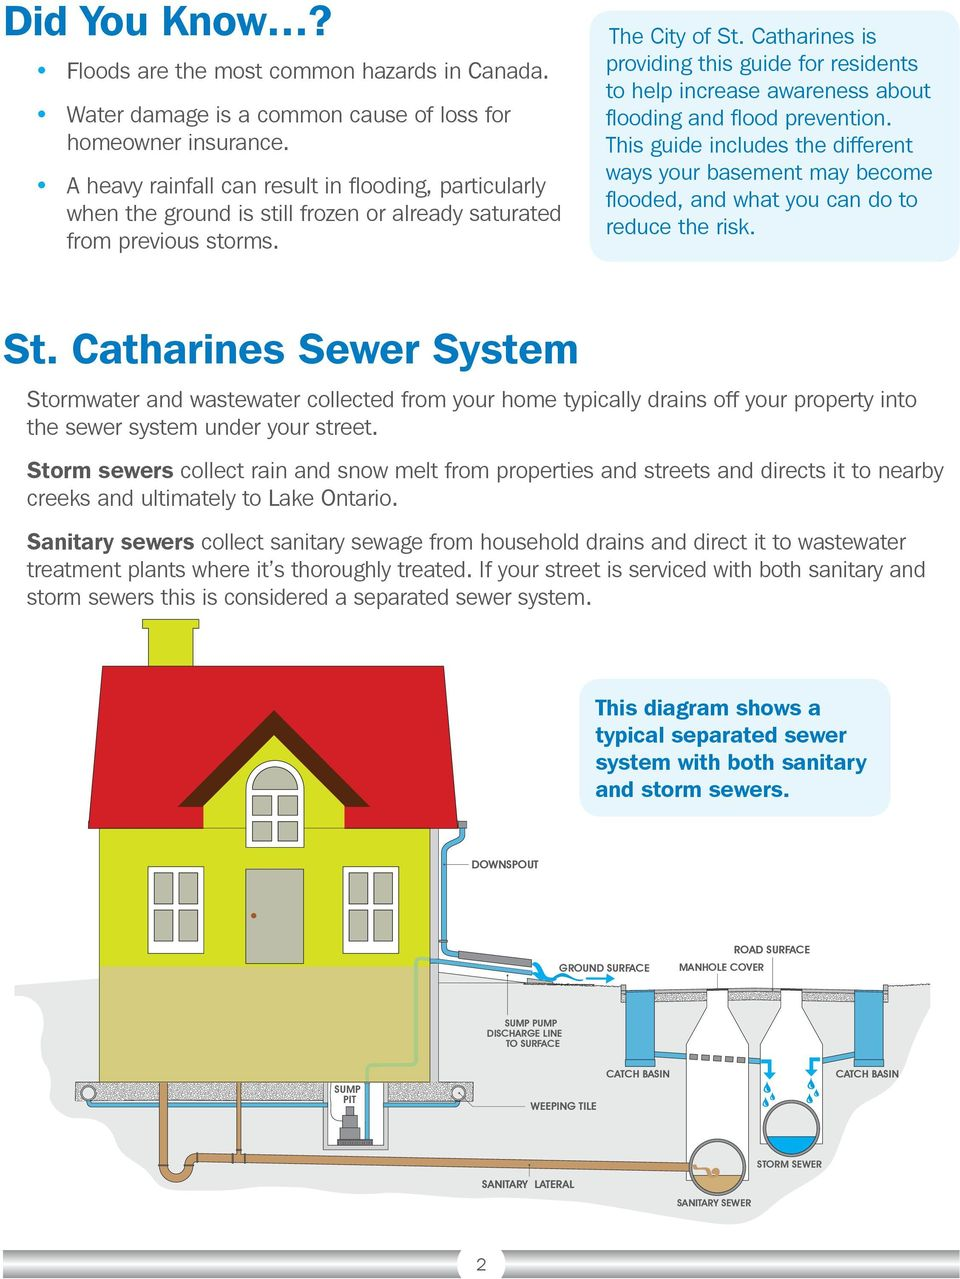 Catharines is providing this guide for residents to help increase awareness about flooding and flood prevention.